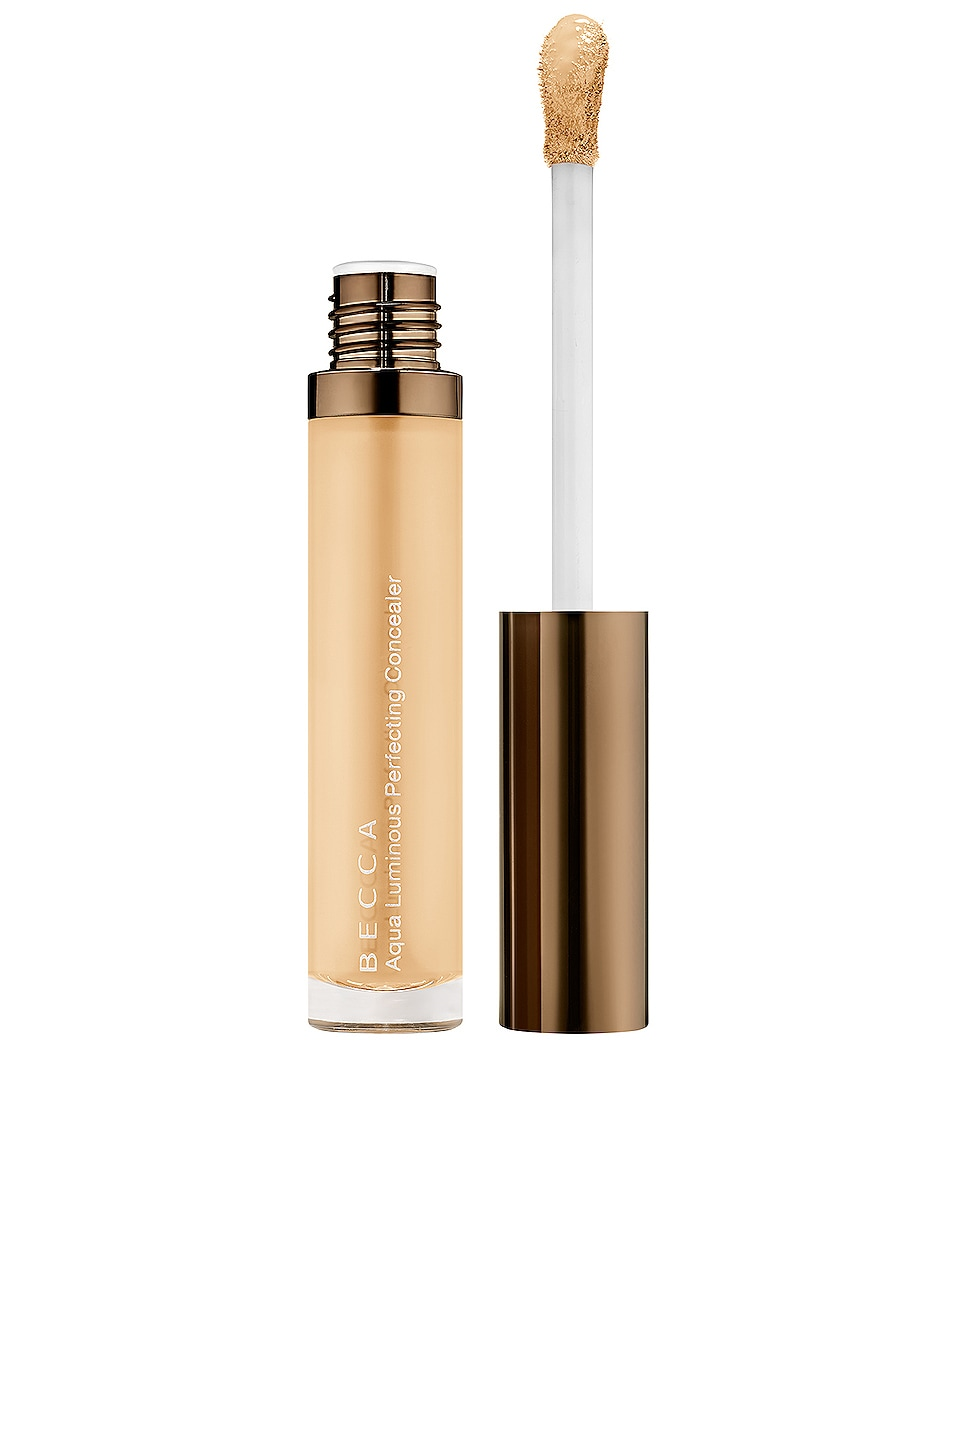 BECCA Aqua Luminous Perfecting Concealer in Fair